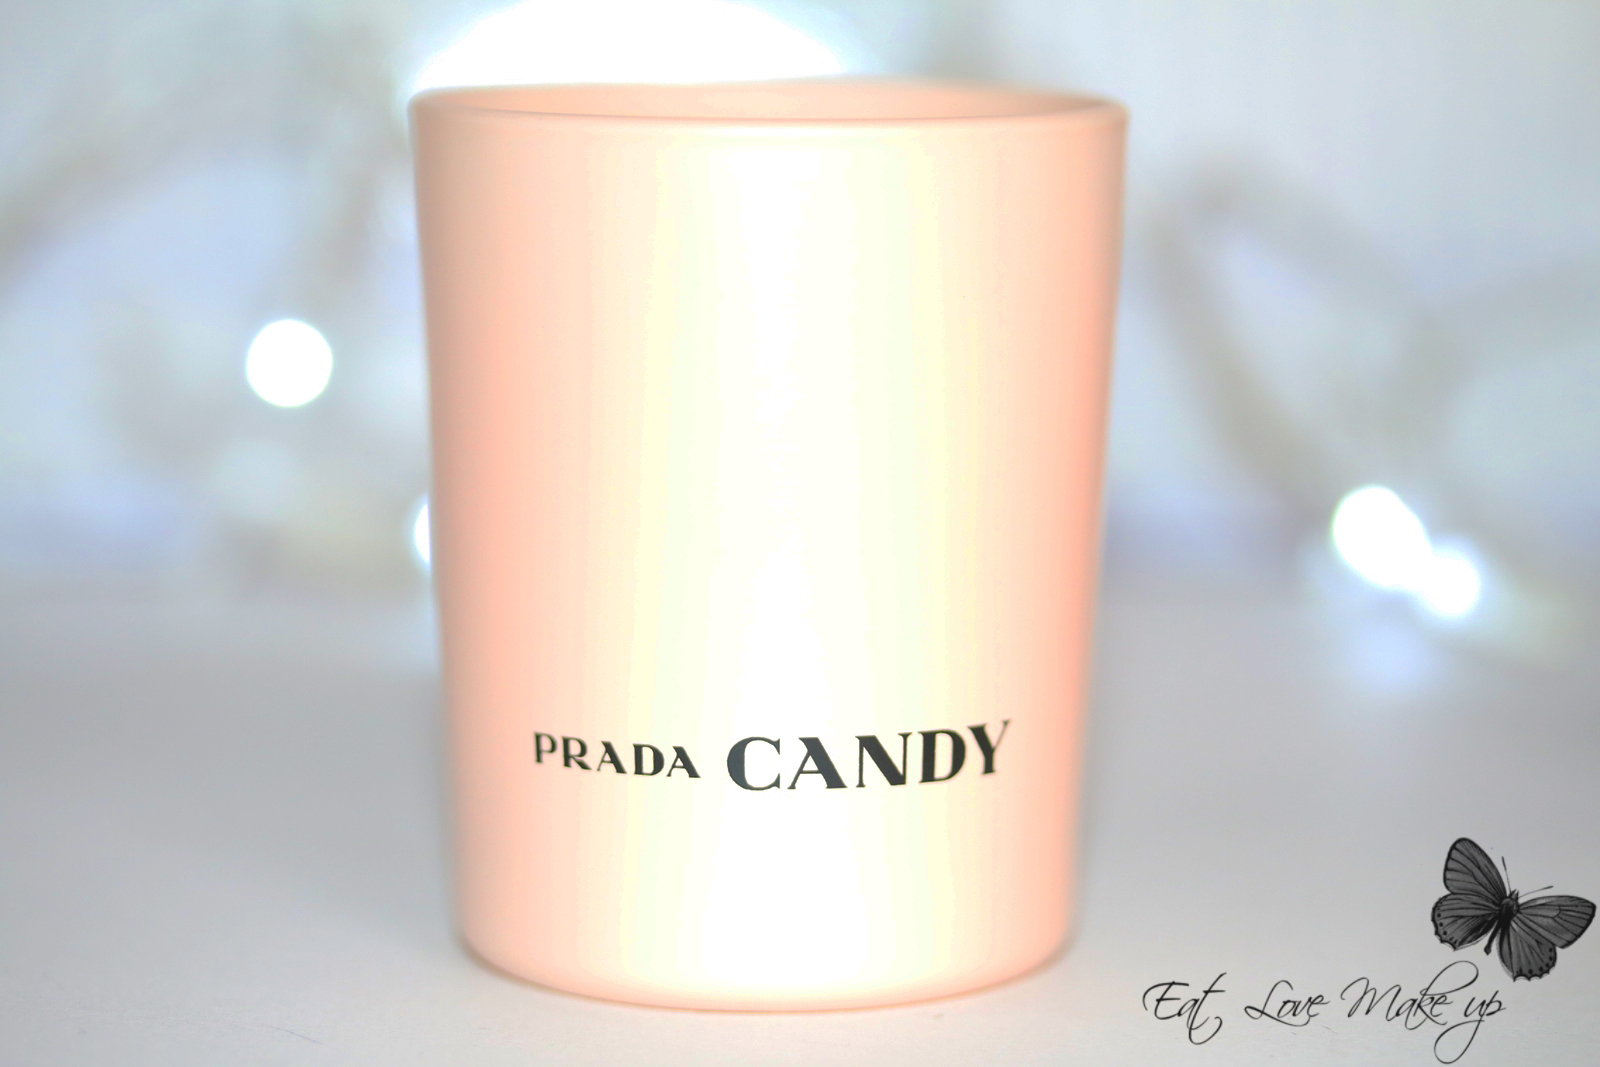 Prada Candy Candle